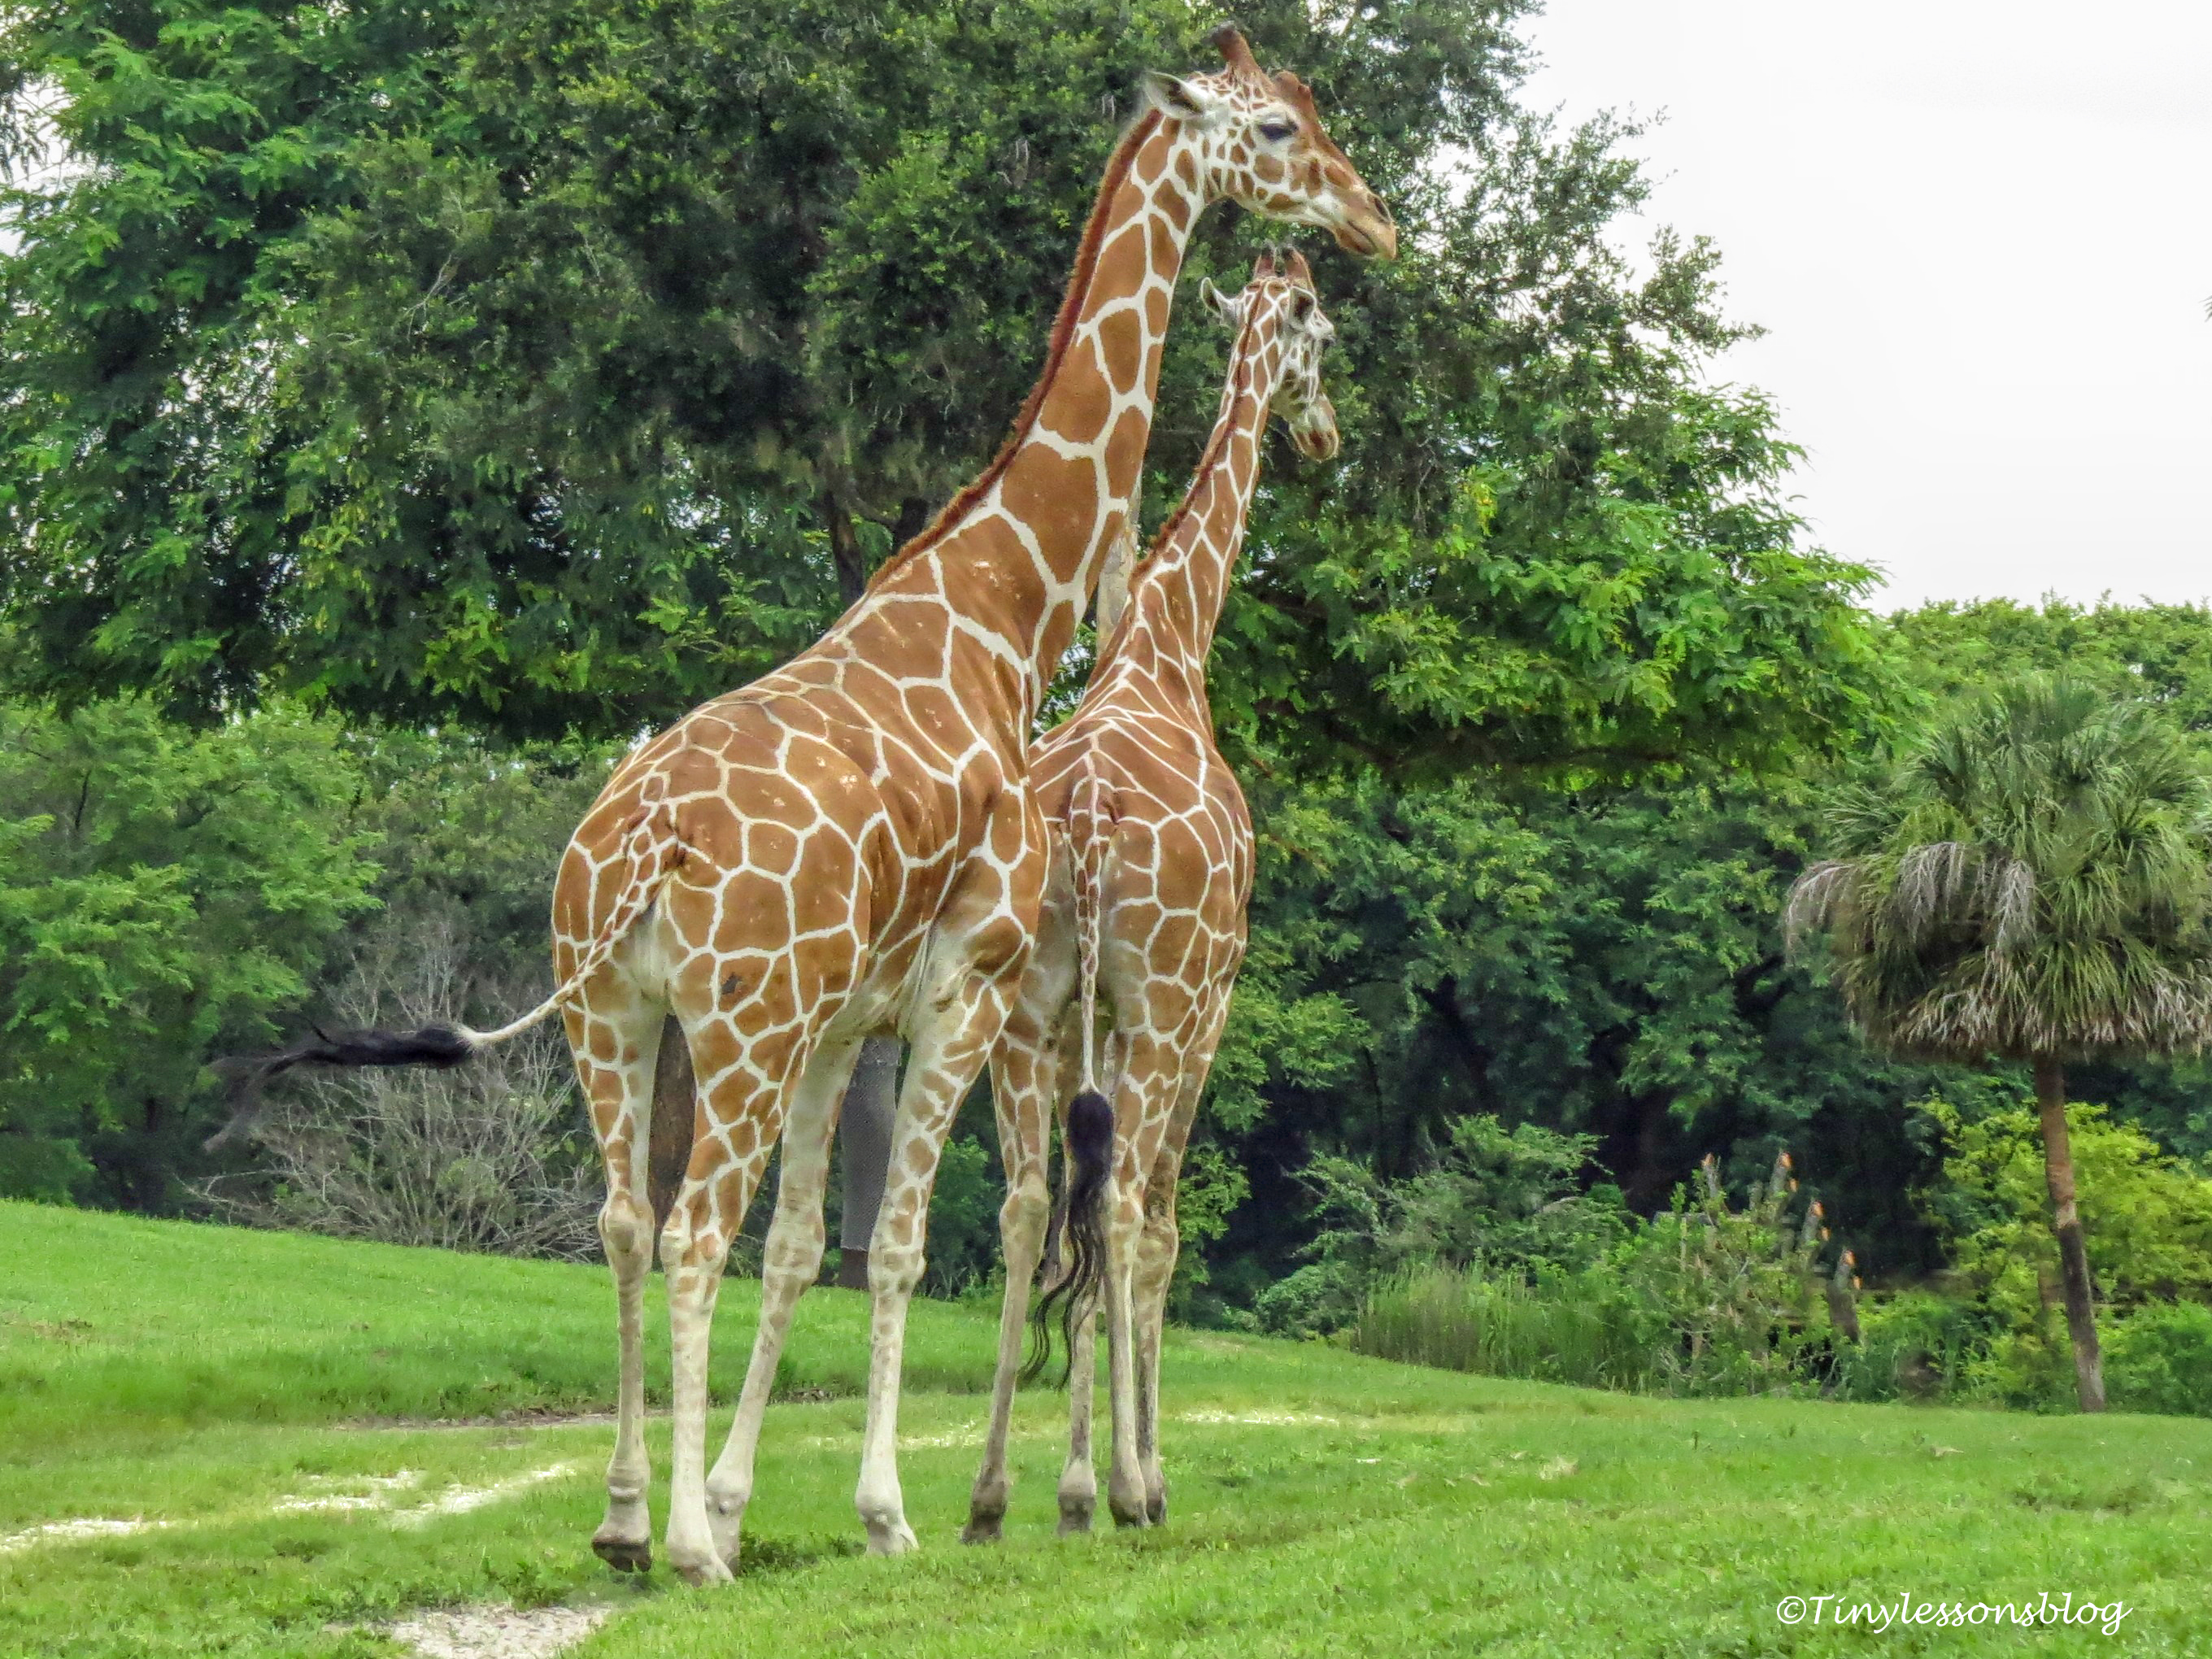 two giraffes UD170